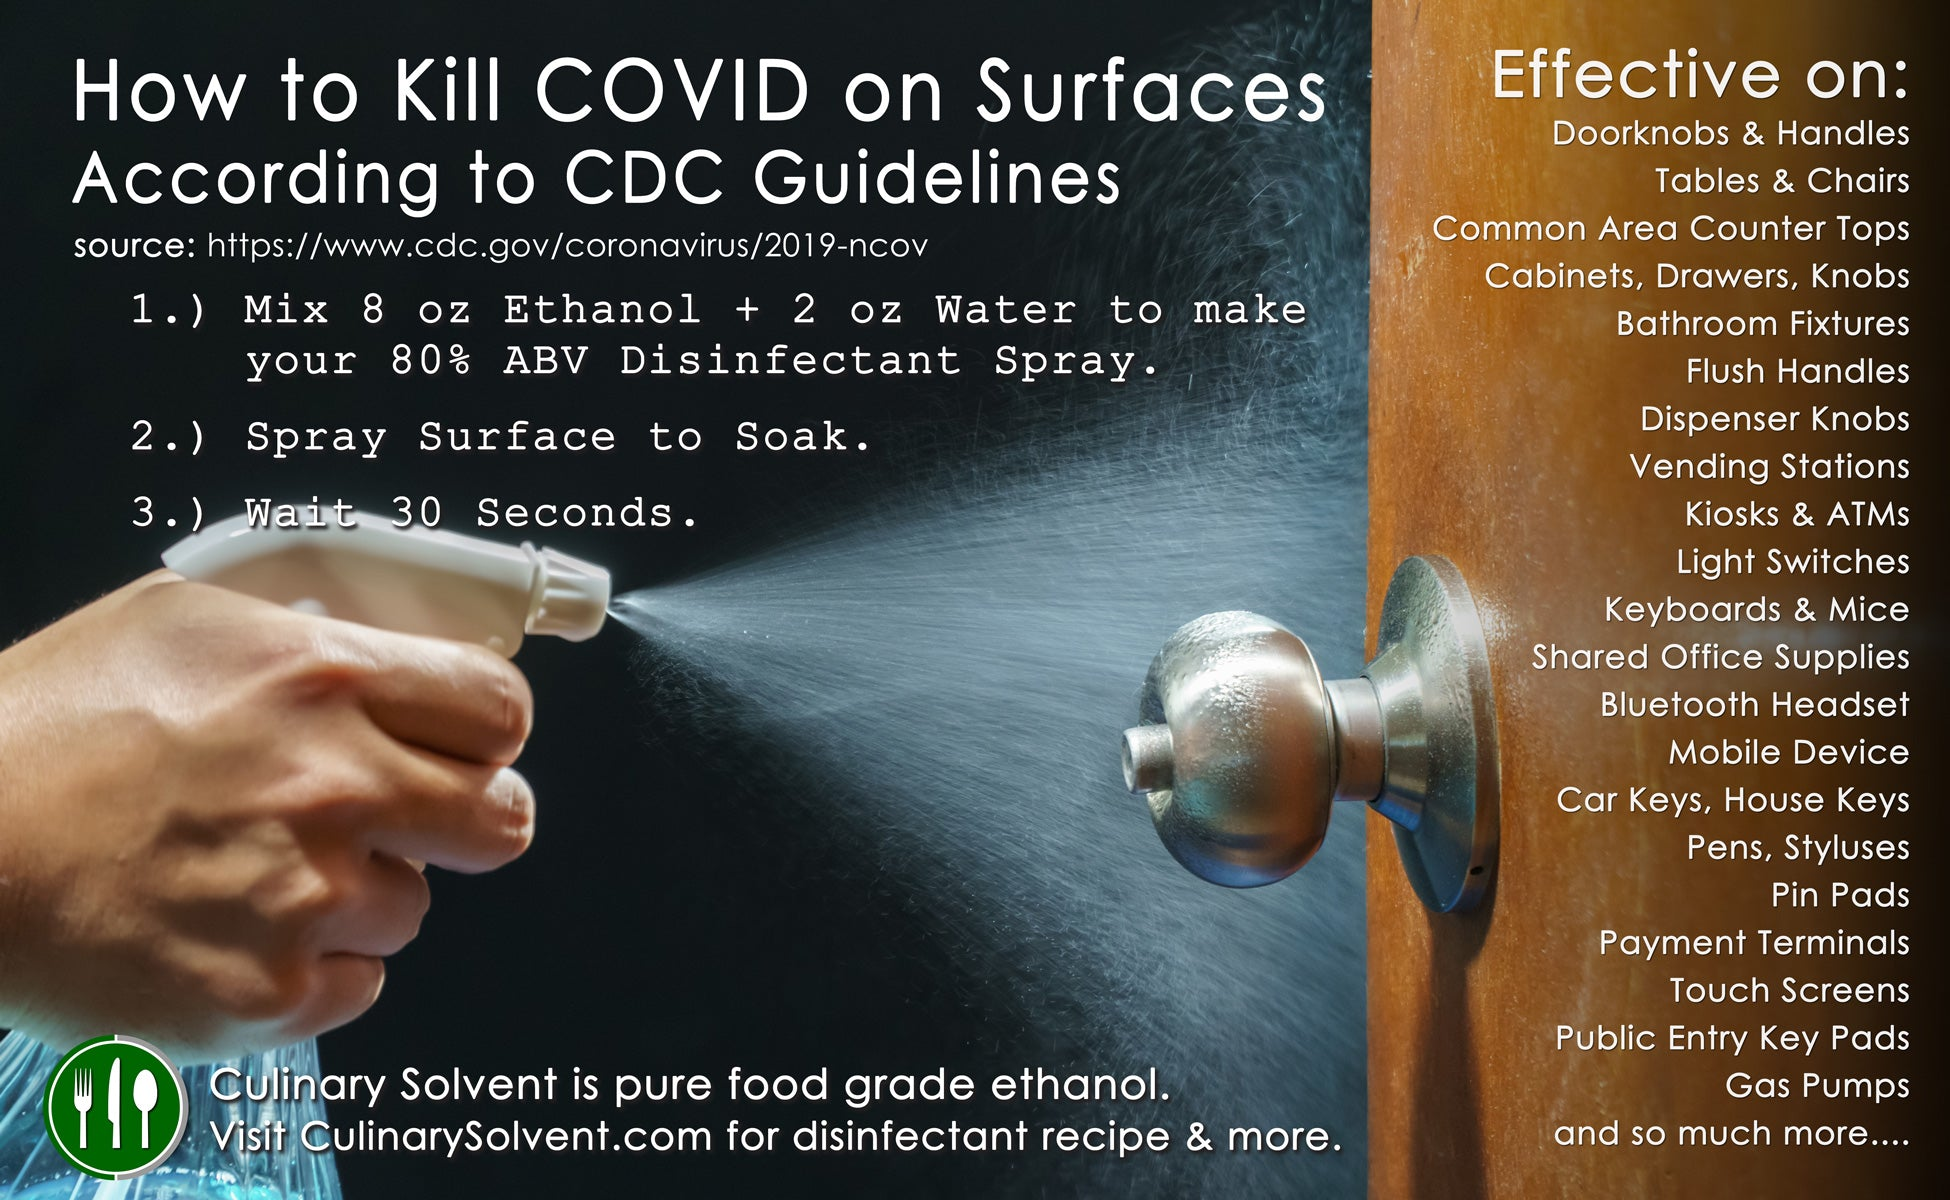 Disinfectant spray recipe using food grade ethanol to kill covid per CDC recommendations - Culinary Solvent